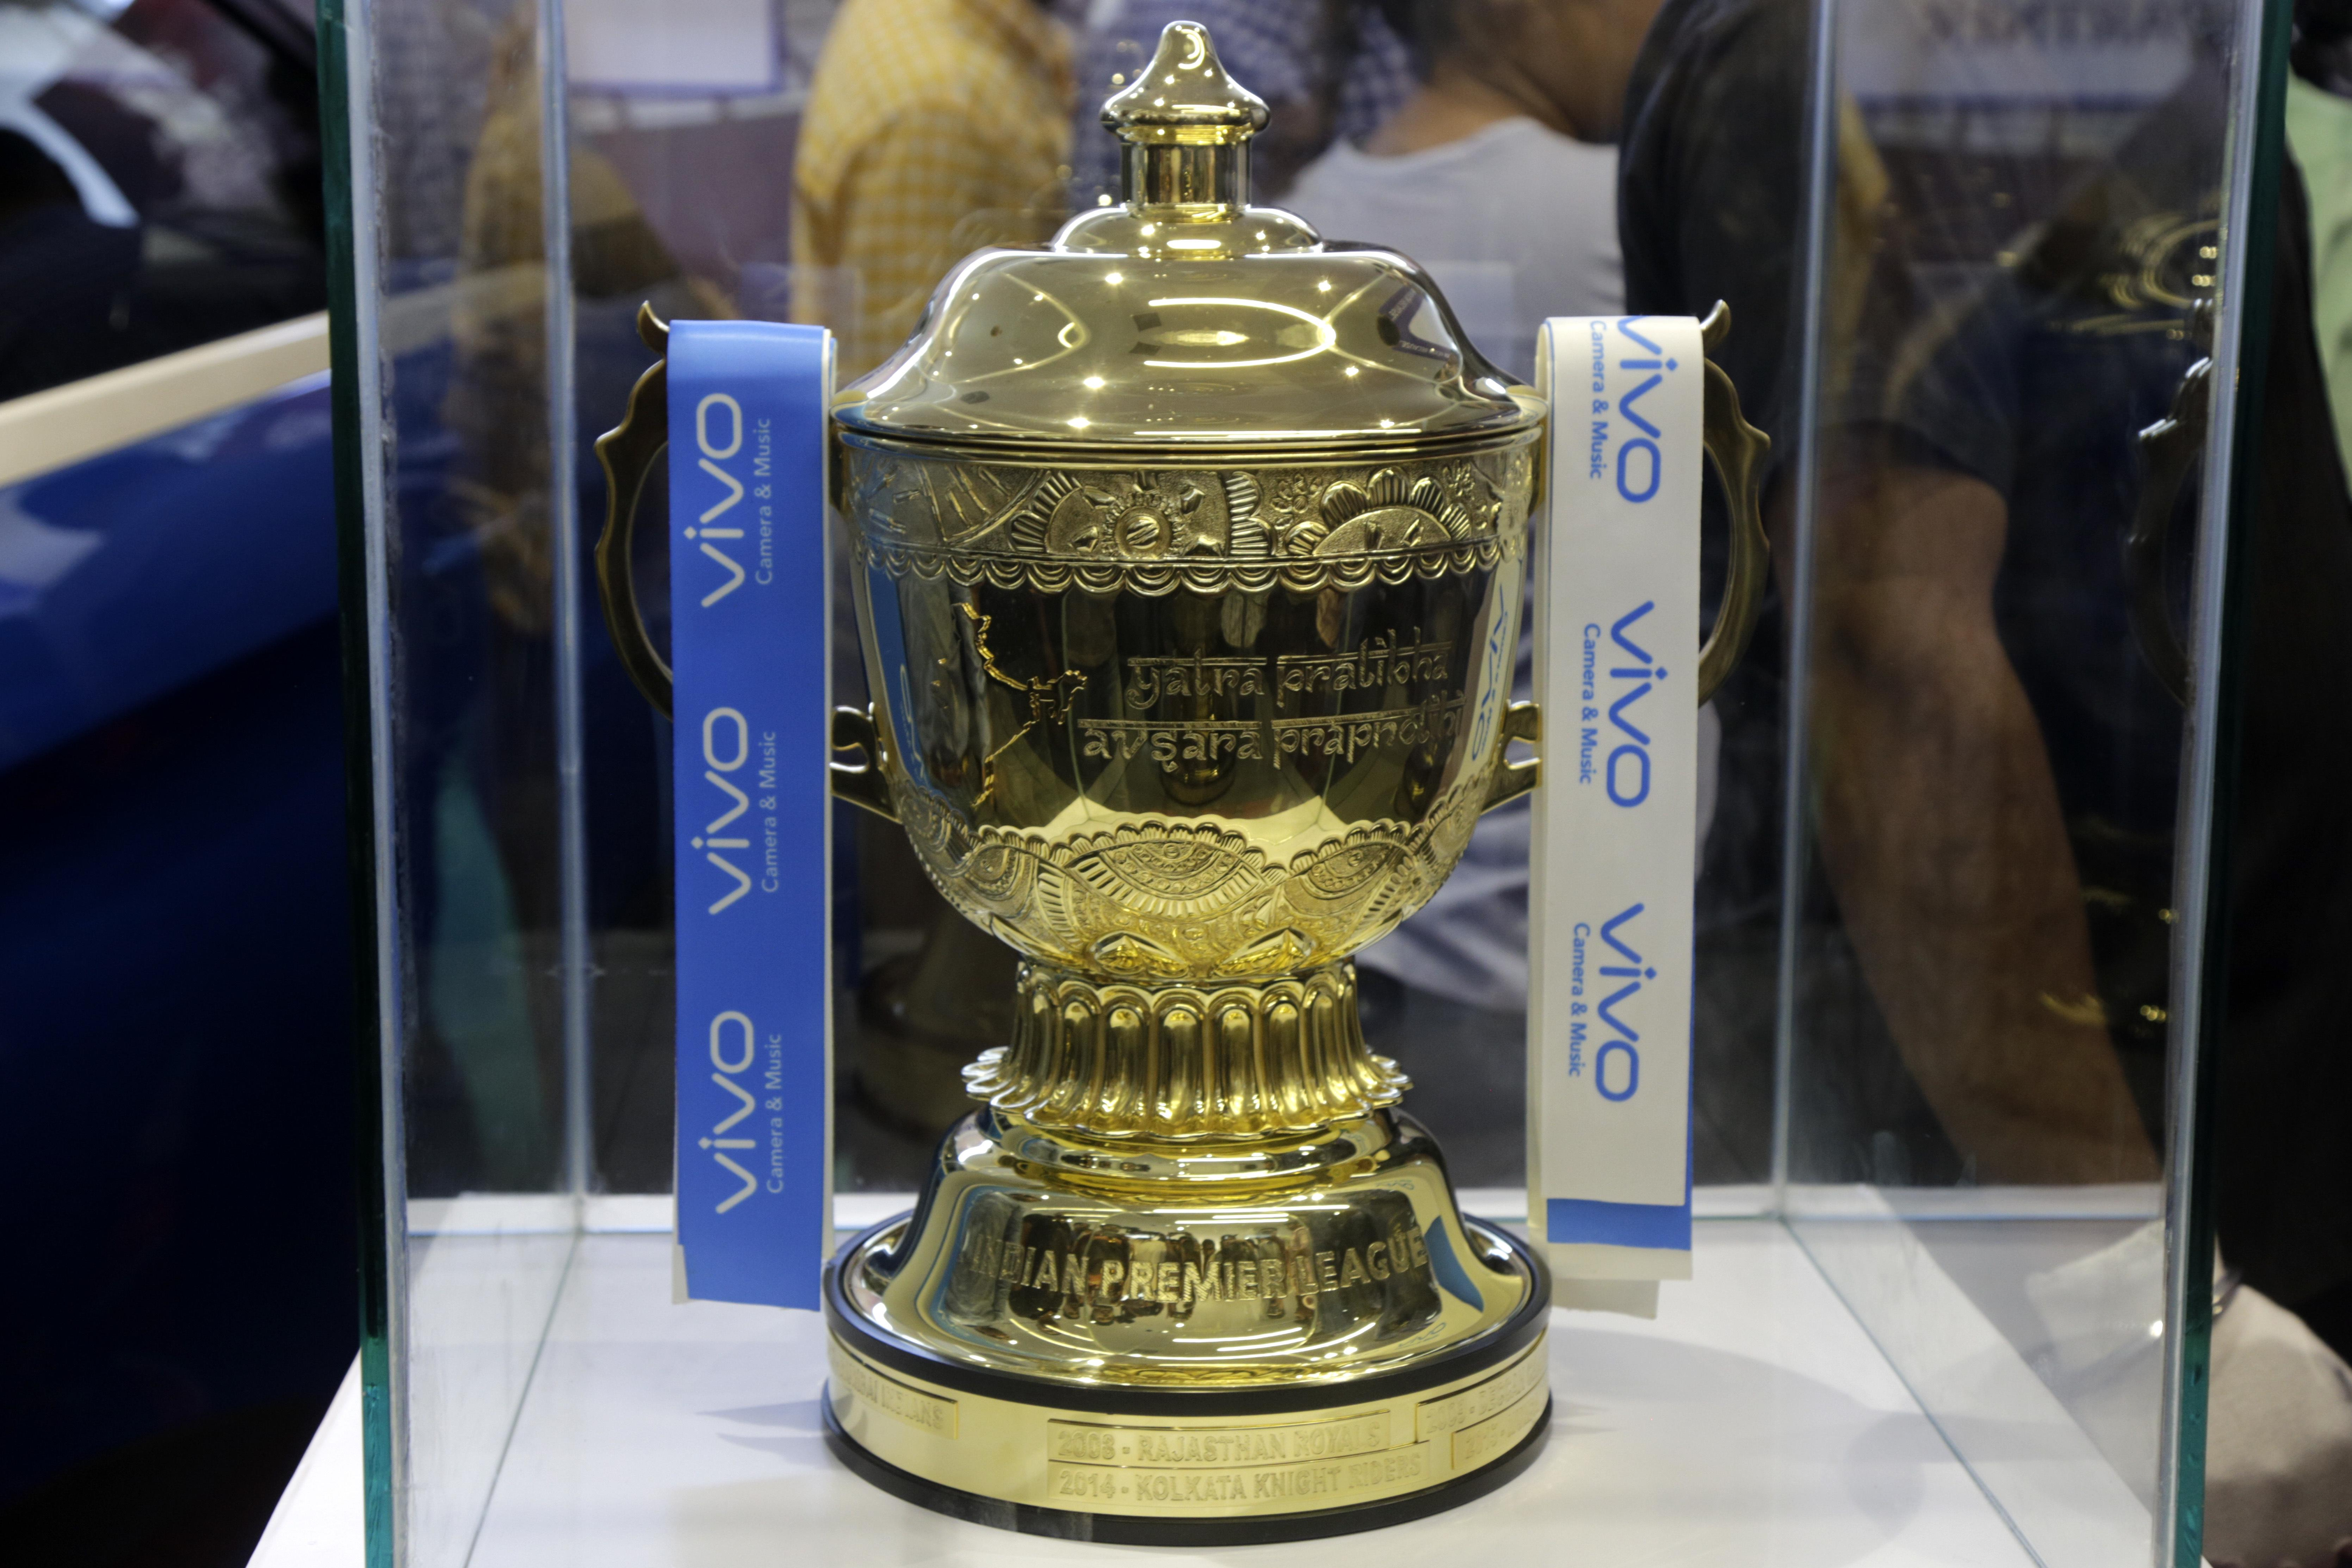 The IPL is the most prestigious tournament in domestic cricket